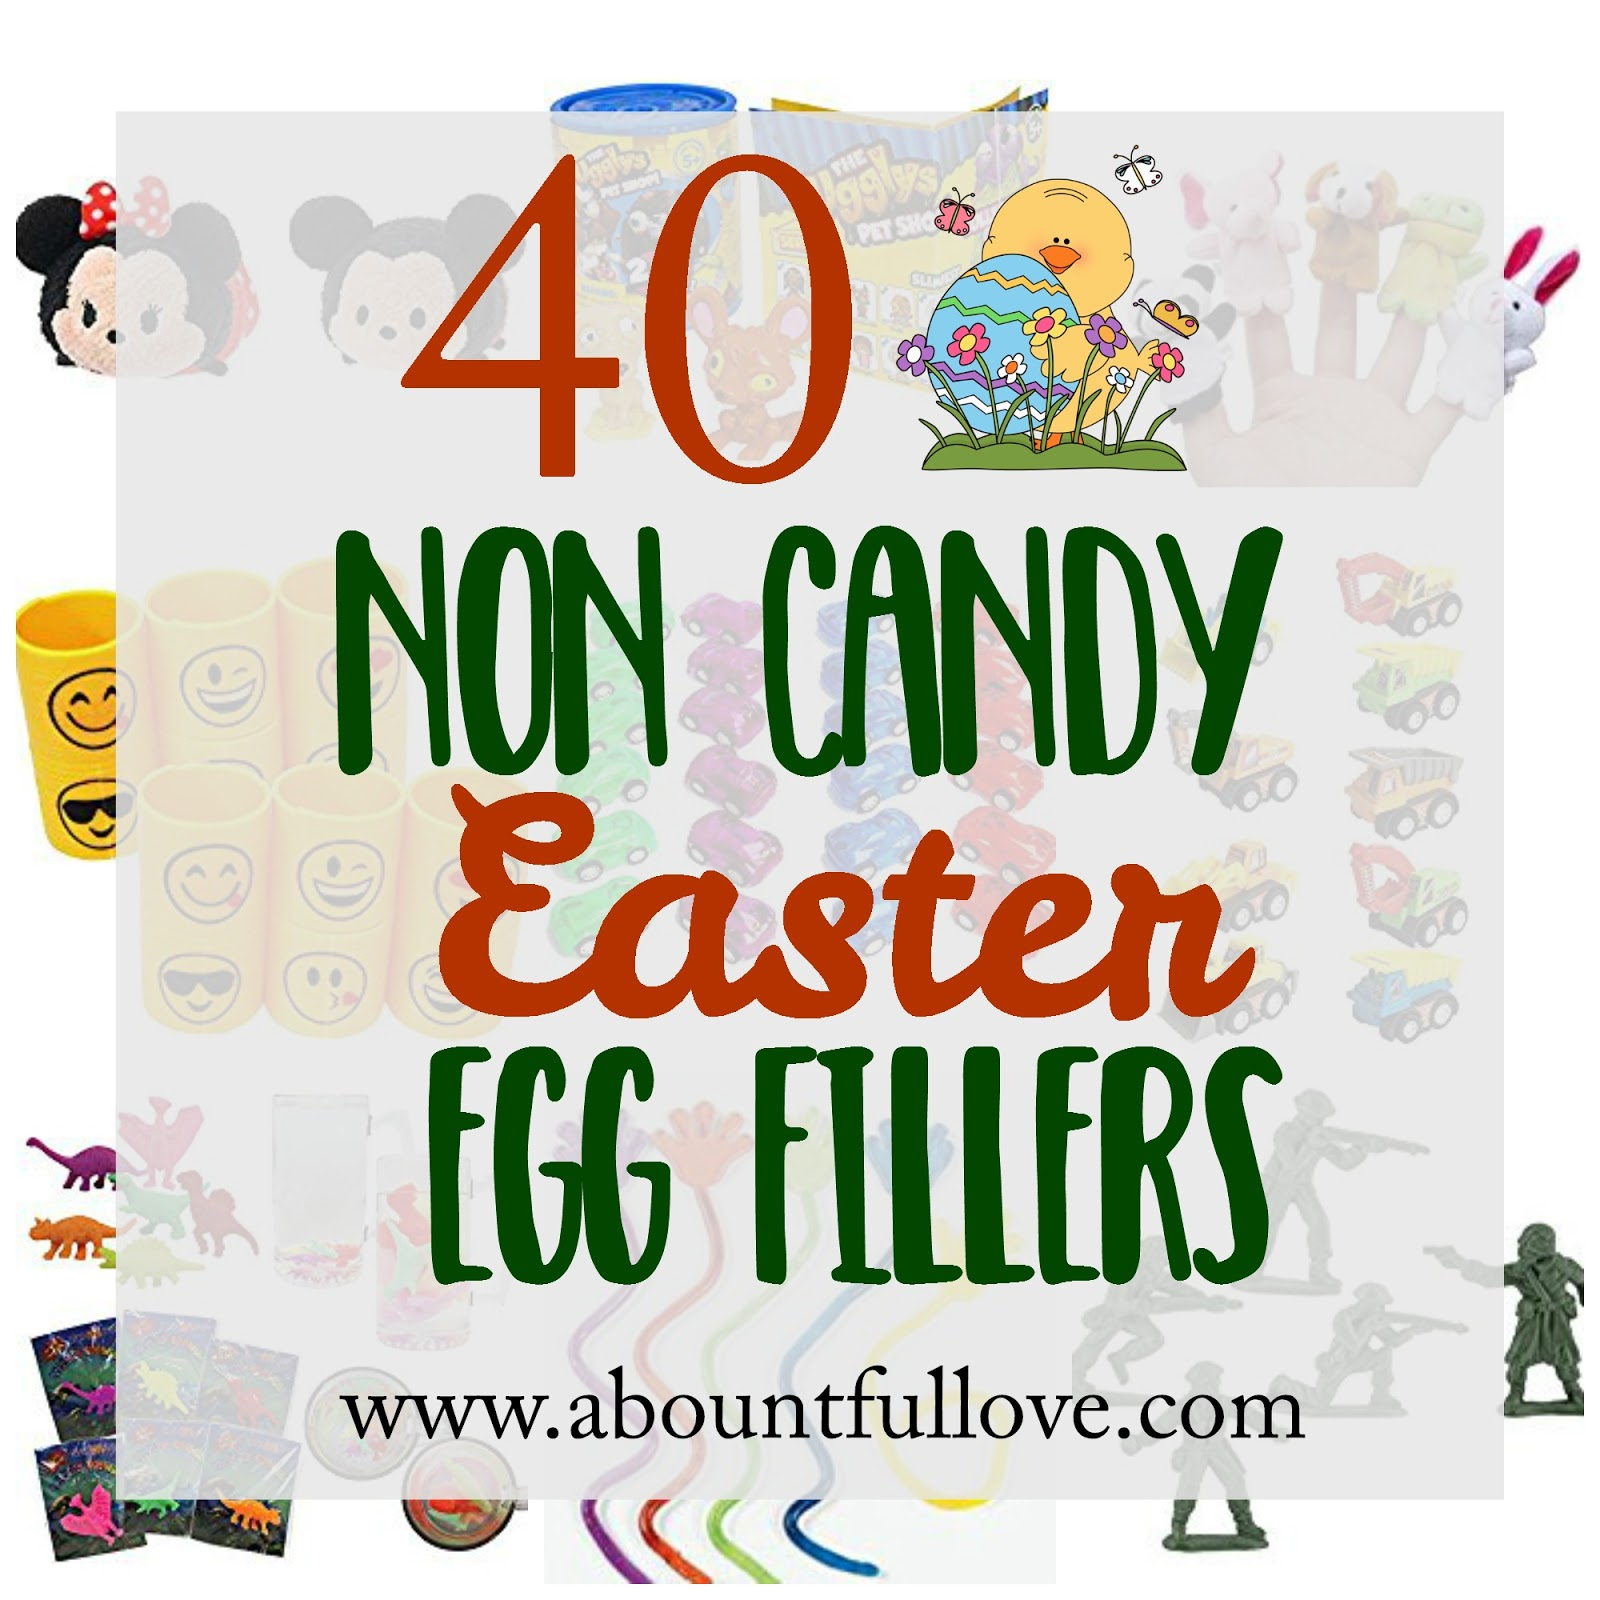 If You Are Looking Into Not Filling Their Easter Eggs With Treats Or Thinking Of What To Mix In The Heres 40 Things That Can Use Fill